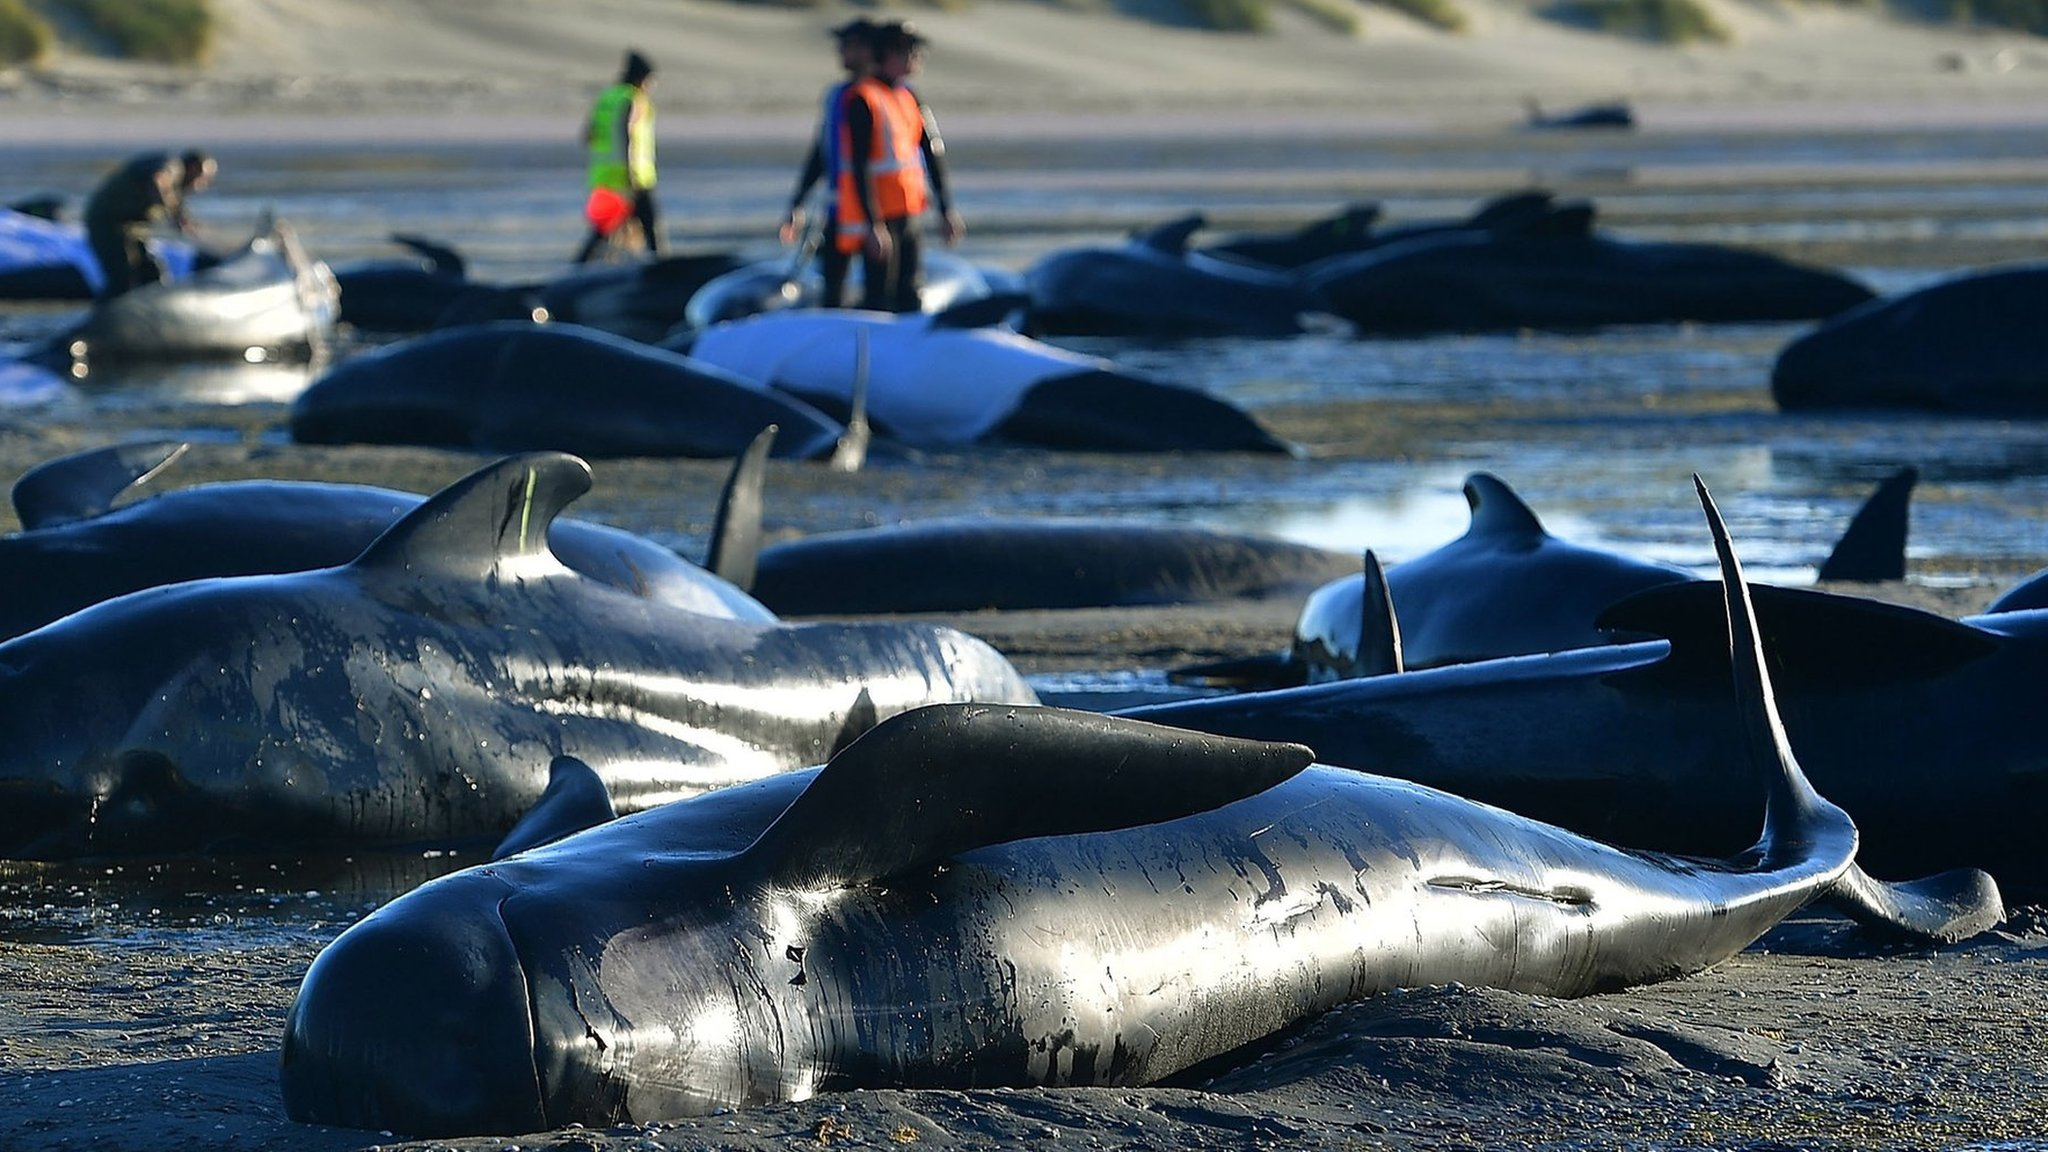 New Zealand whales: Why are so many getting stranded?